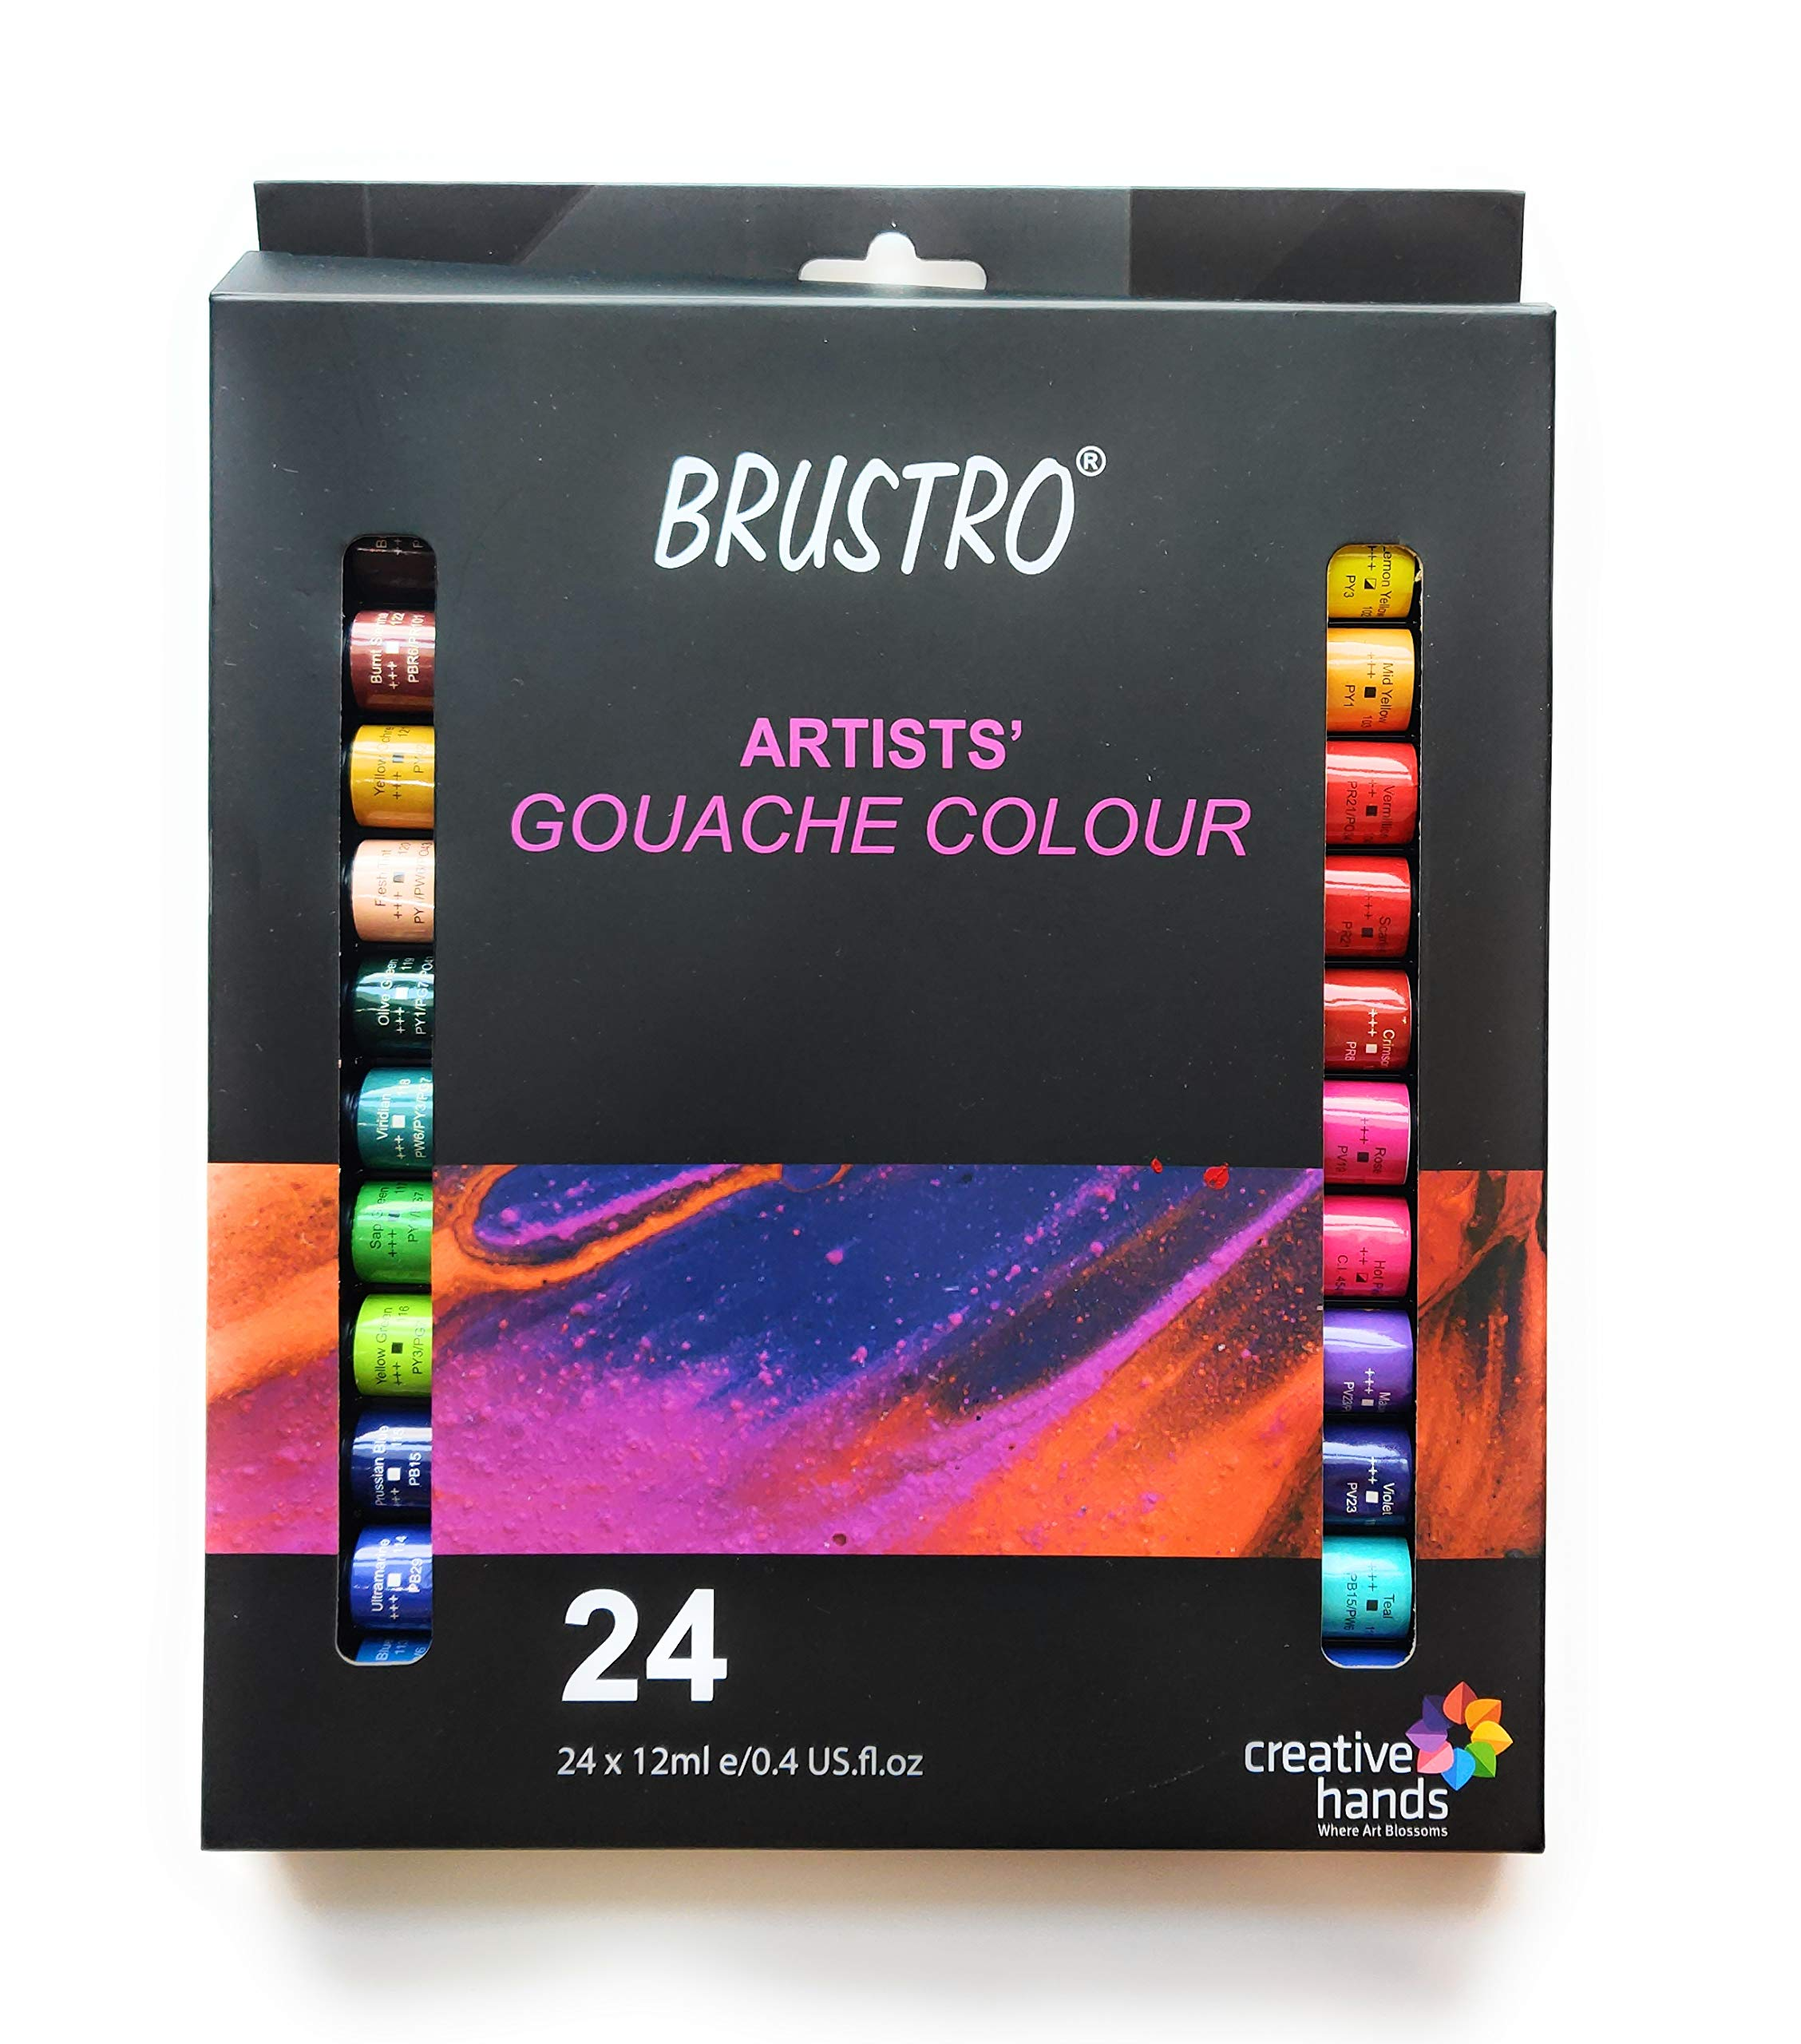 Brustro Artists Gouache Colour Set of 24 Colours X 12ML Tubes.